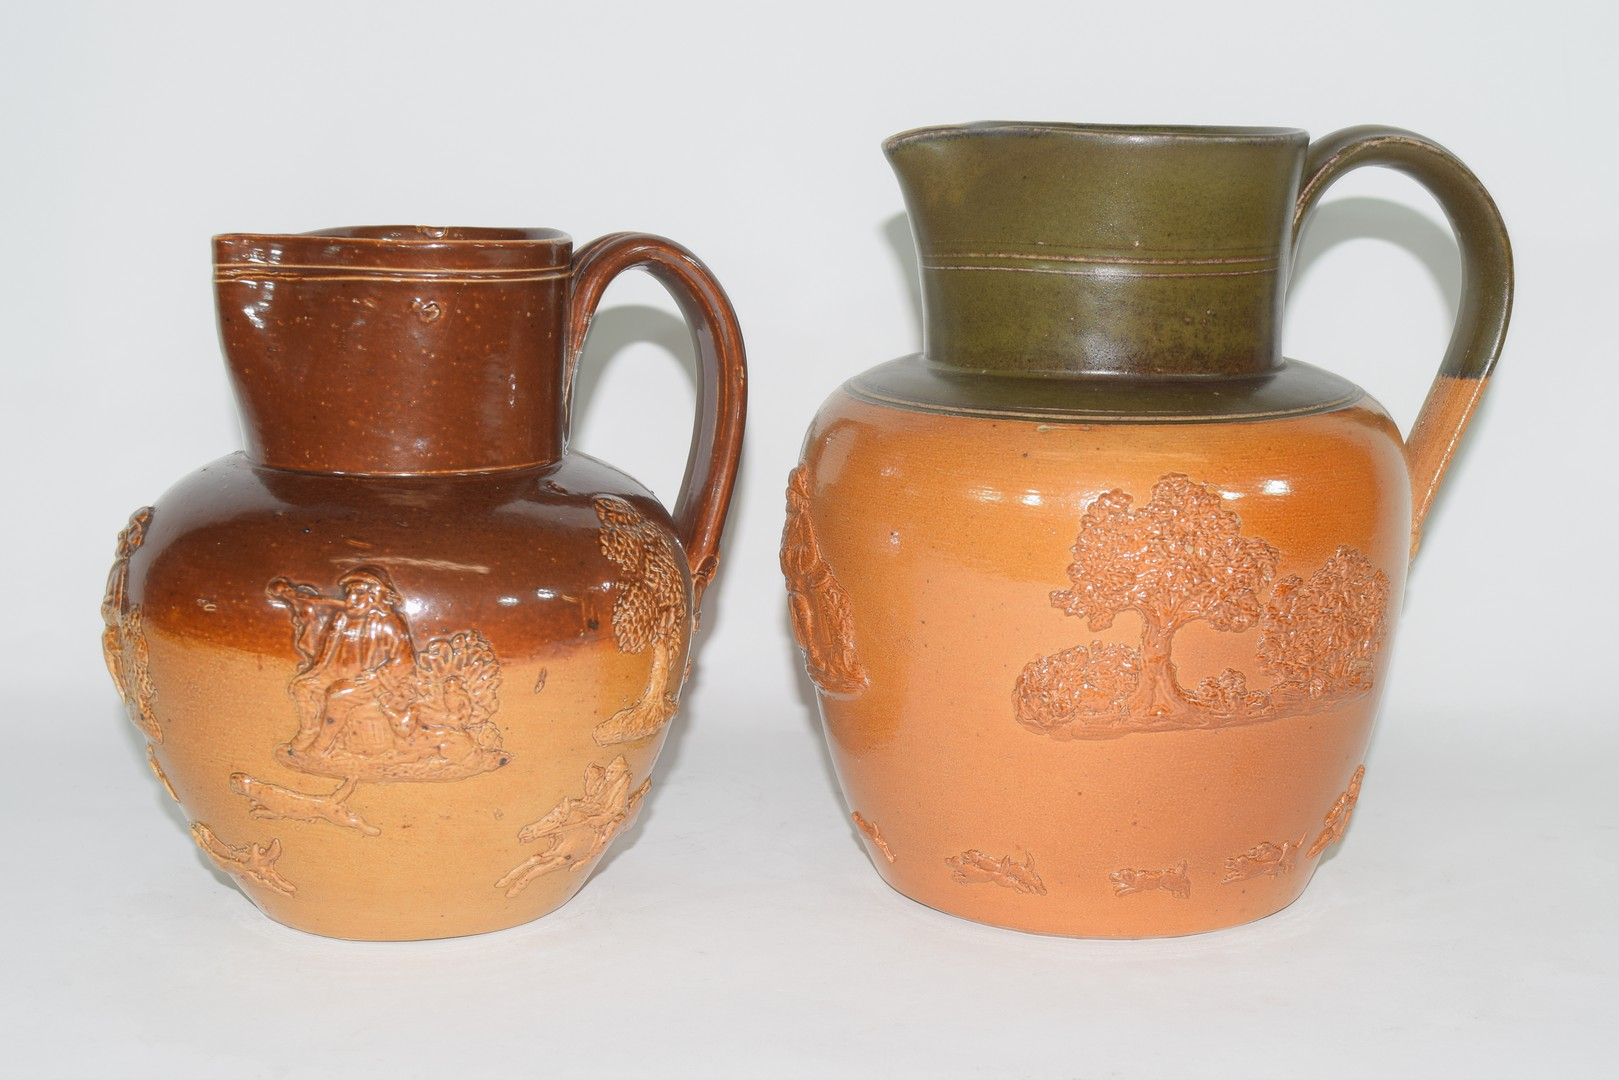 Doulton Lambeth brown harvest ware jug and one other